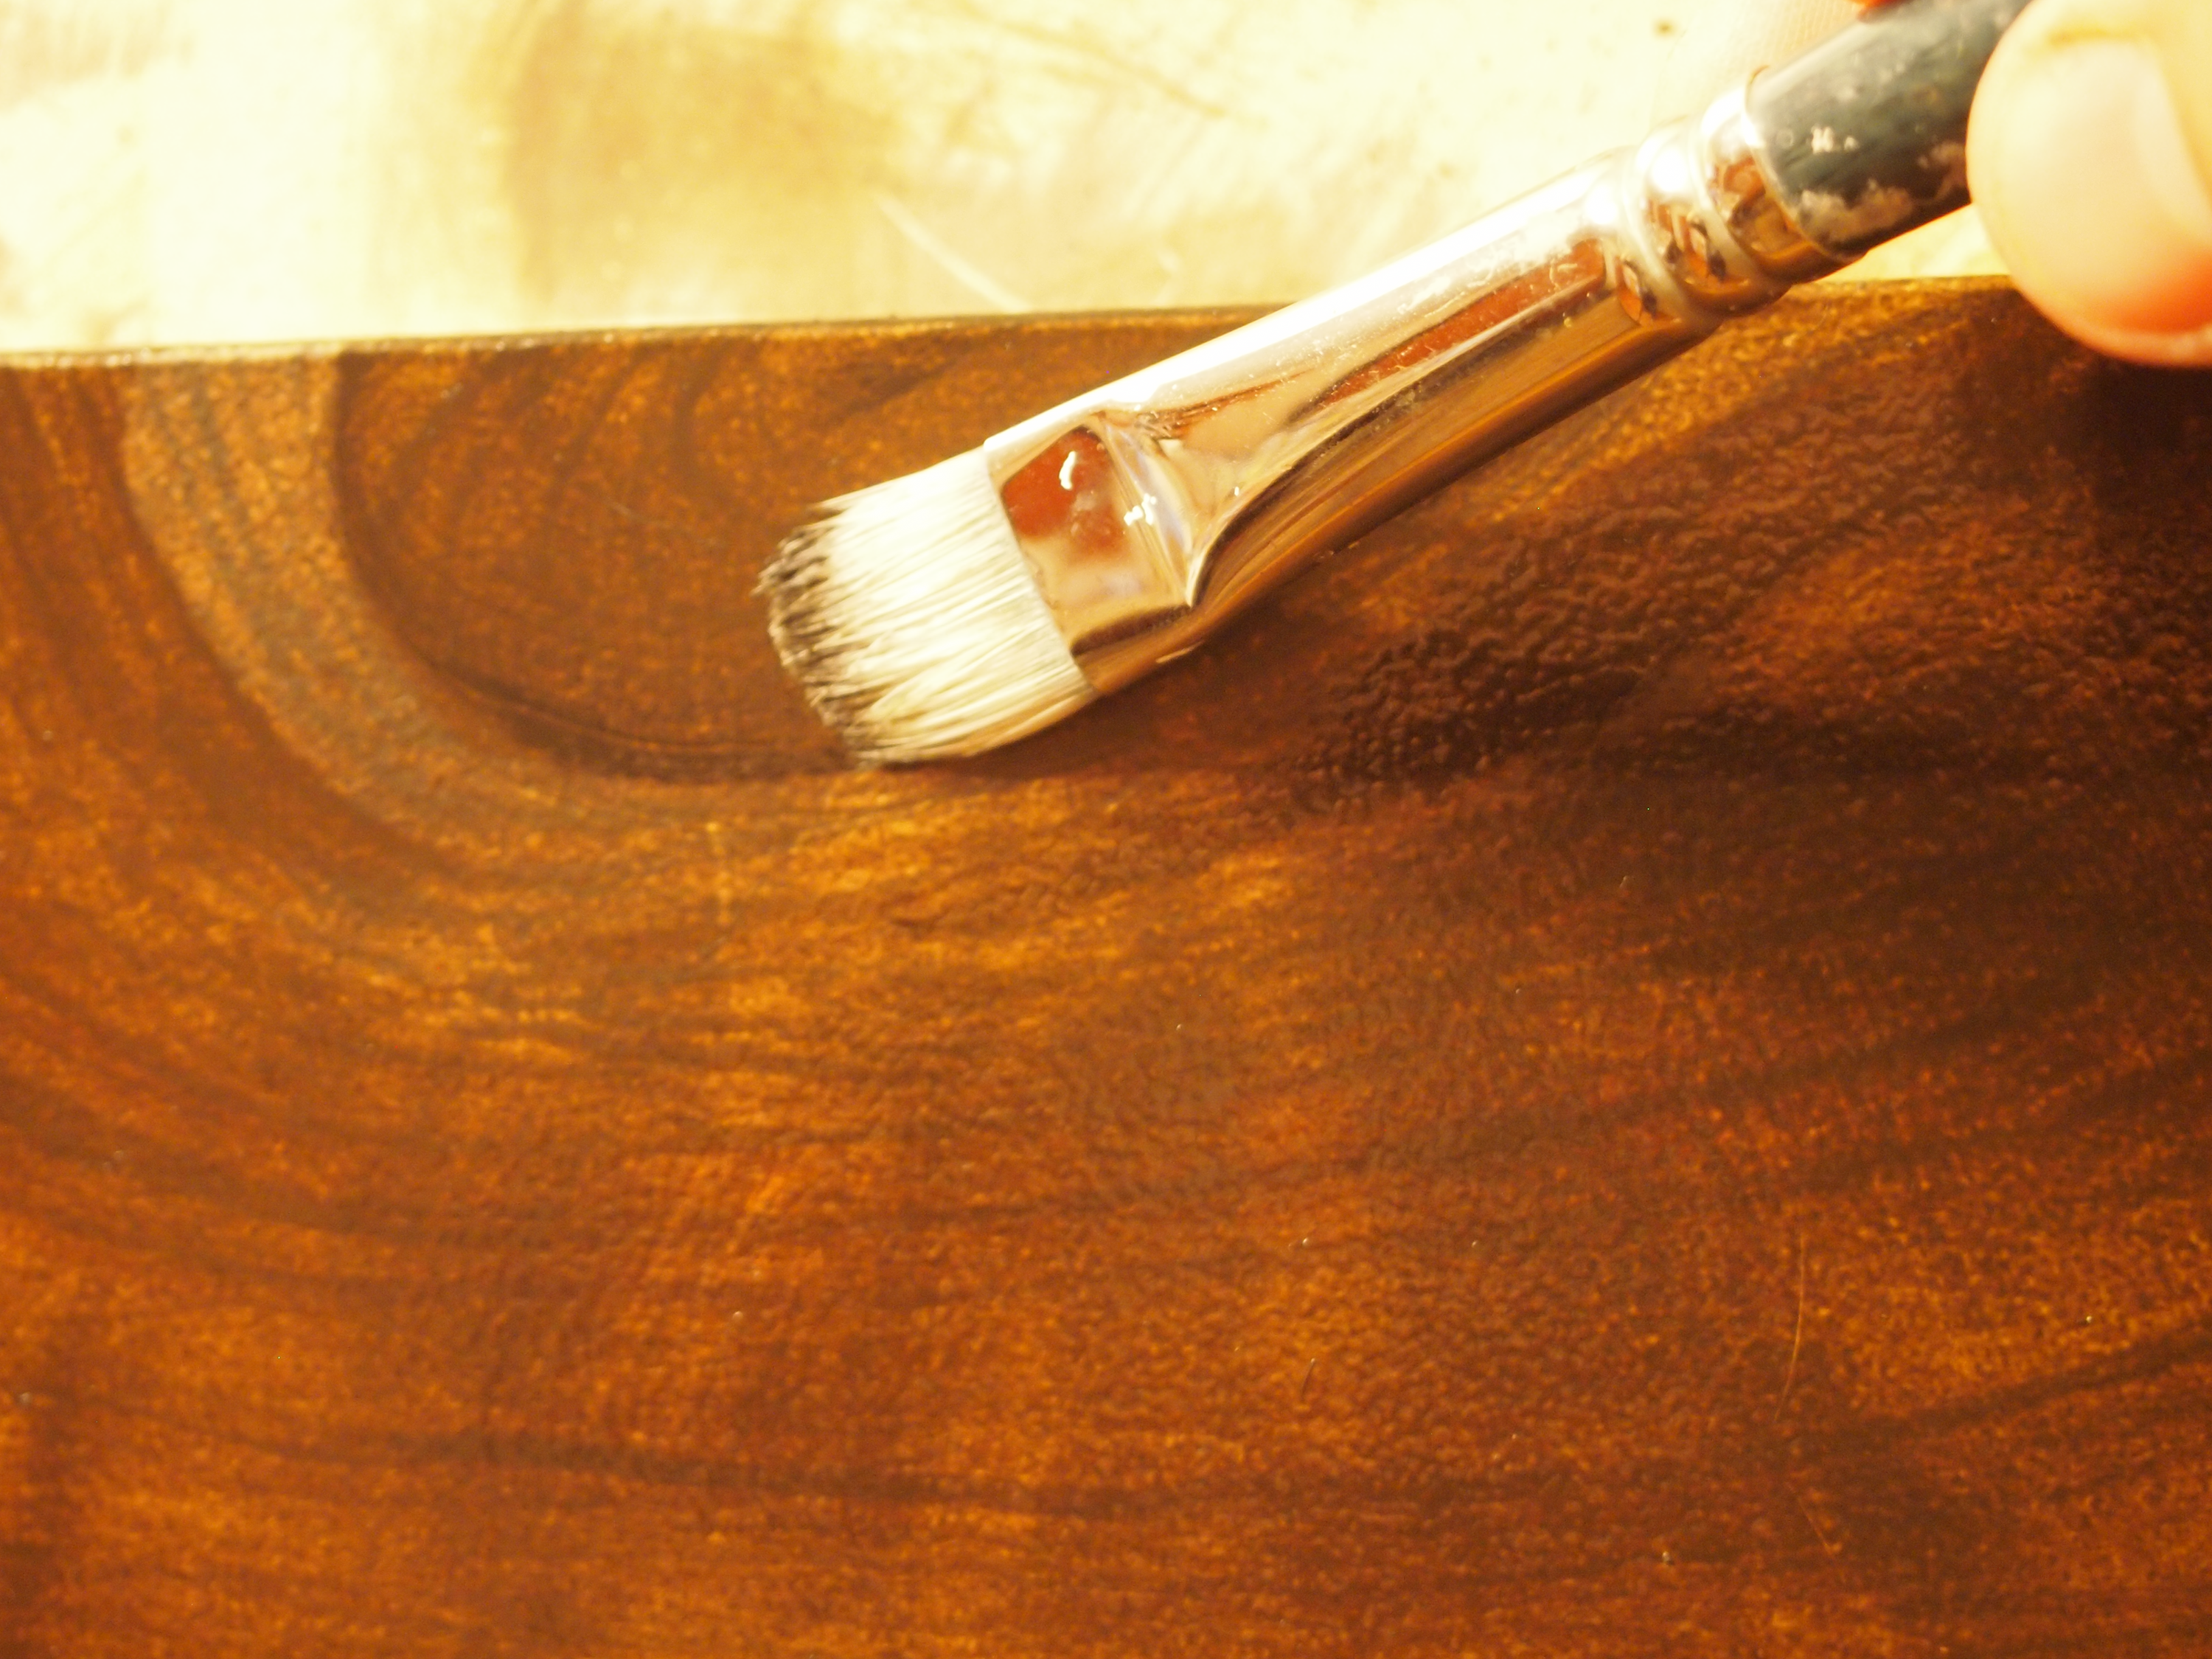 How To Paint Paneling Faux Wood Knots And Cracks For Realism In Your Faux Wood